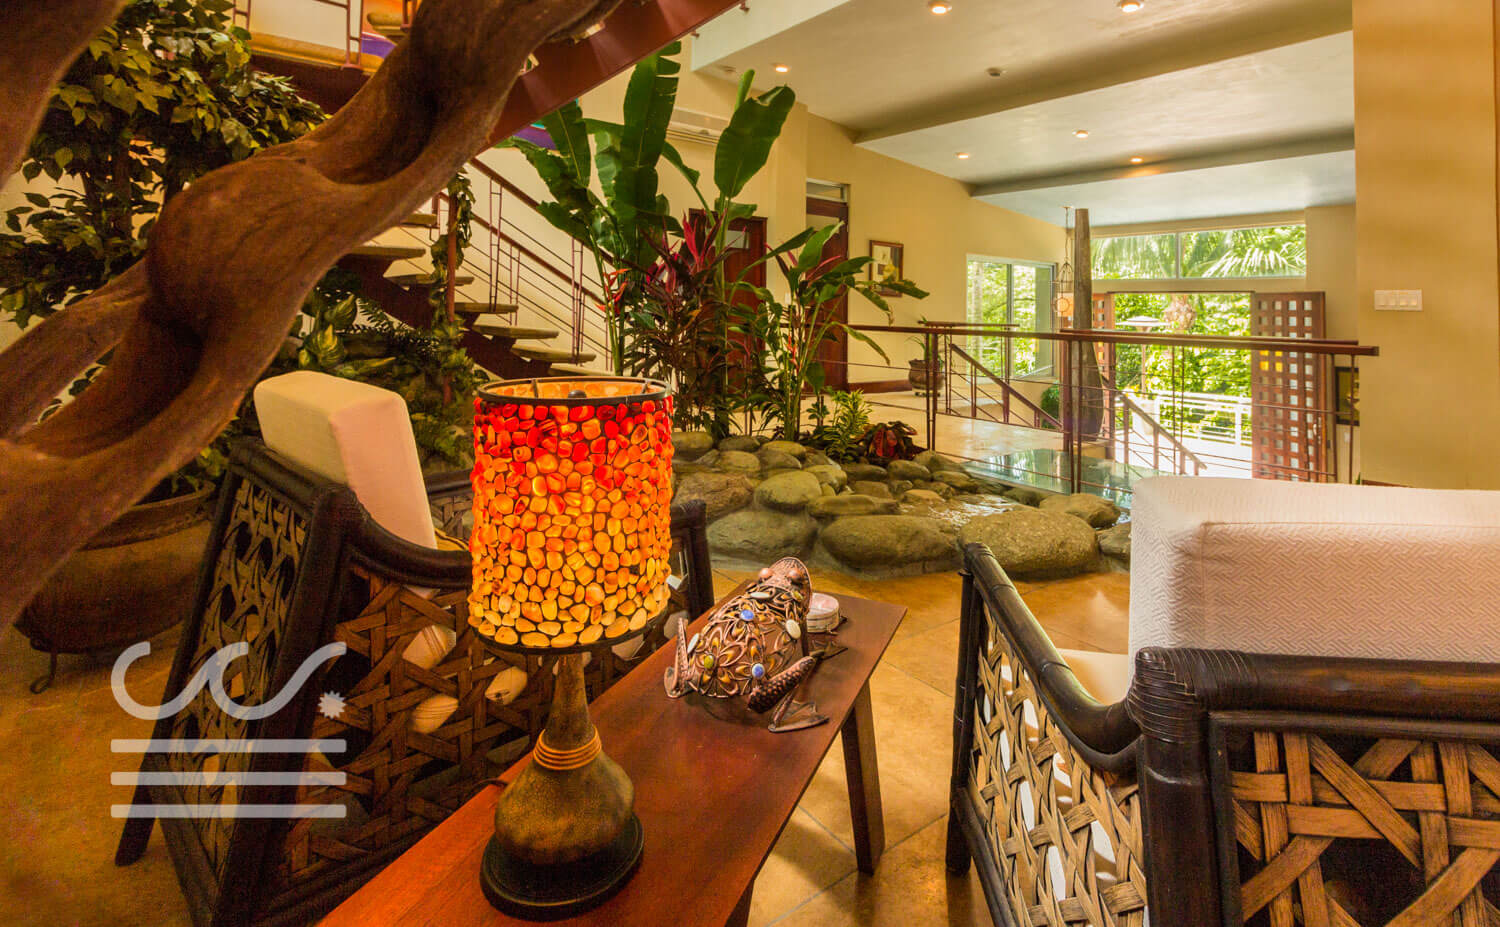 The-Last-Resort-Wanderlust-Realty-Real-Estate-Retals-Nosara-Costa-Rica-14.jpg